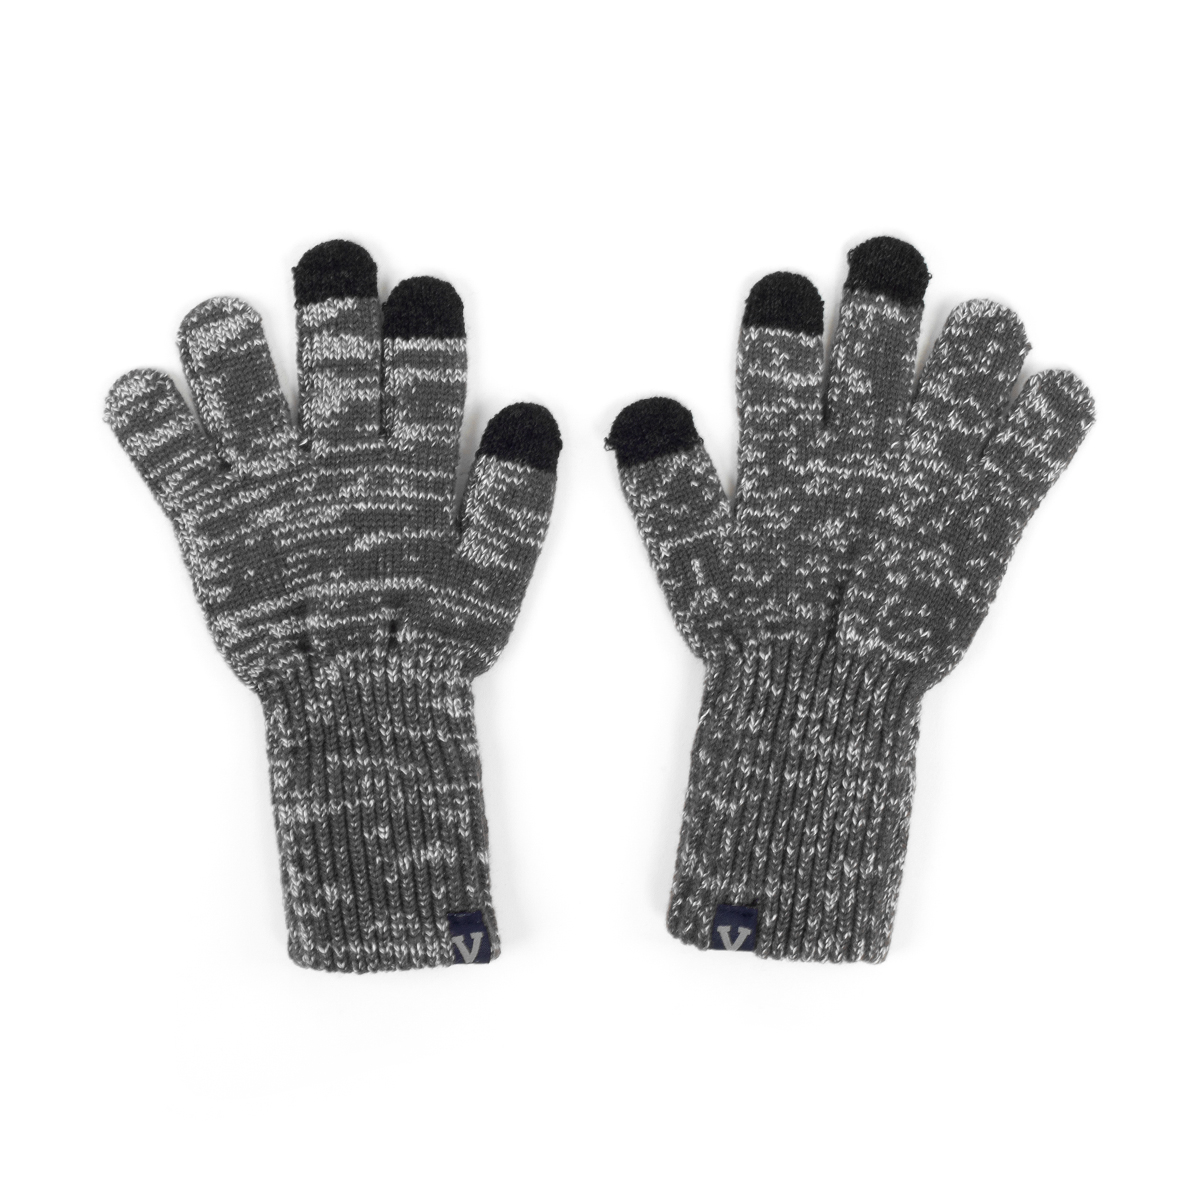 University of Virginia Frostbite TOW Knit and Gloves